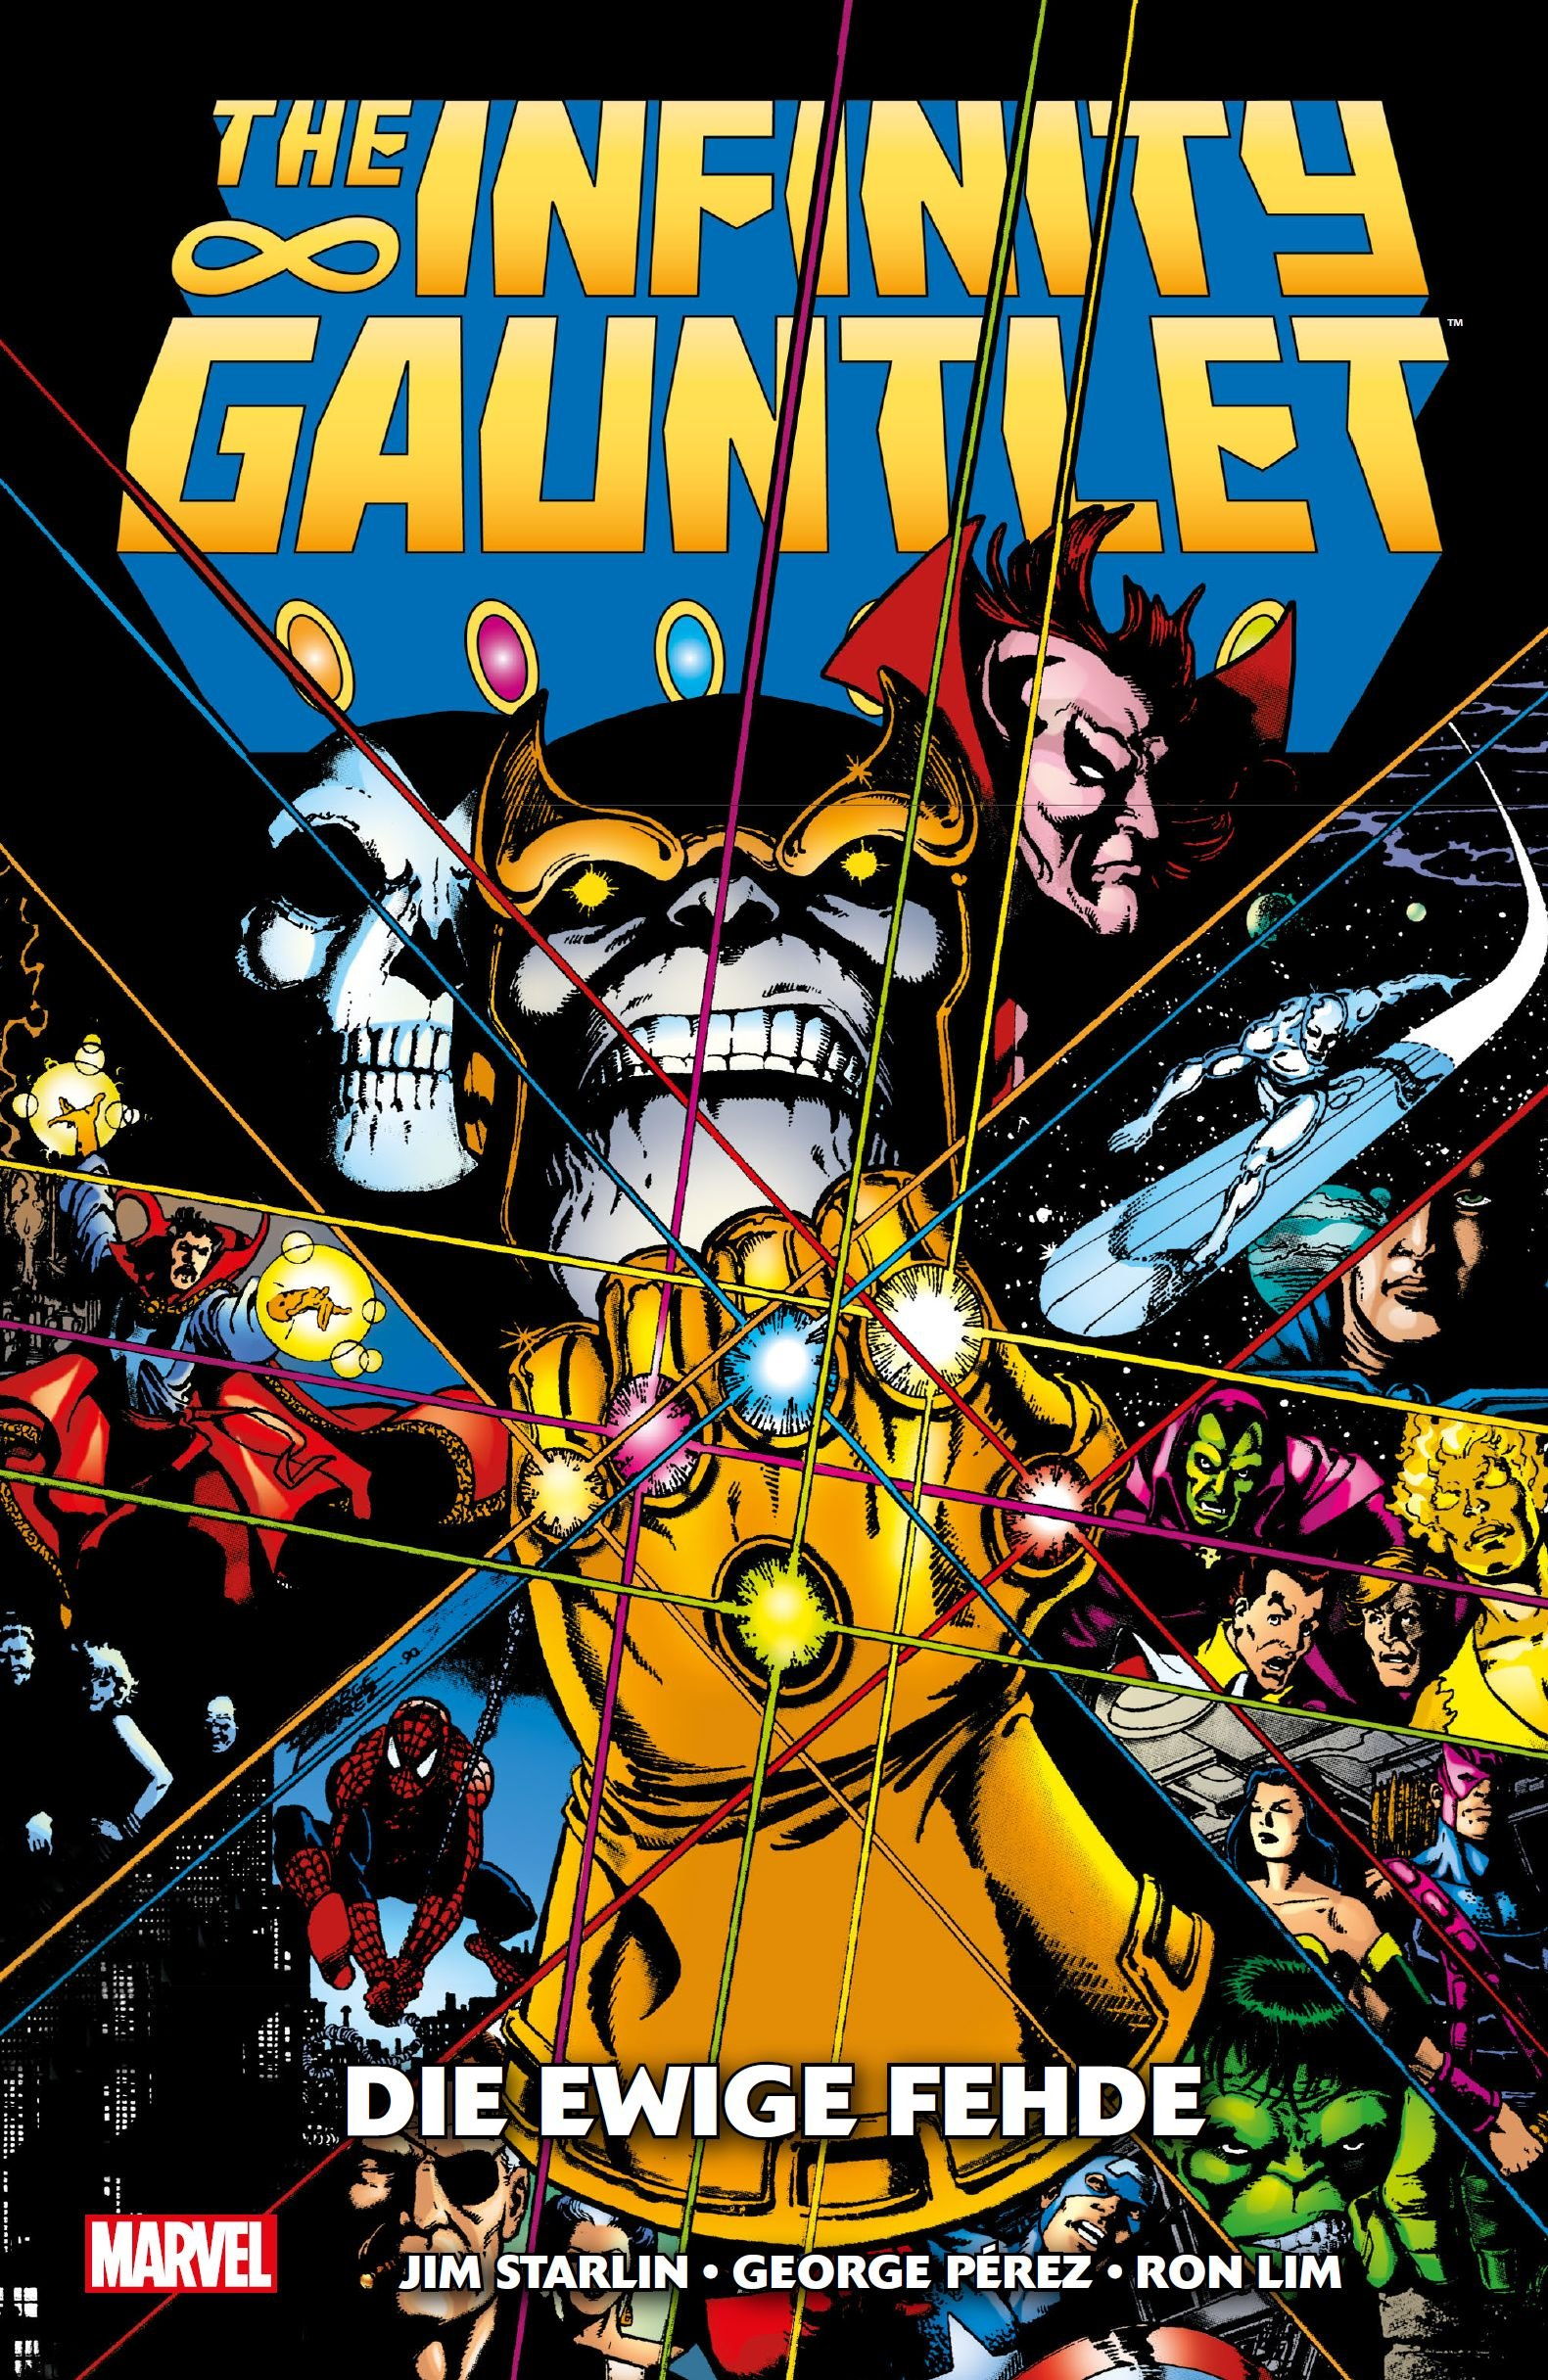 The Infinity Gauntlet Die Ewige Fehde Amazonde Jim Starlin